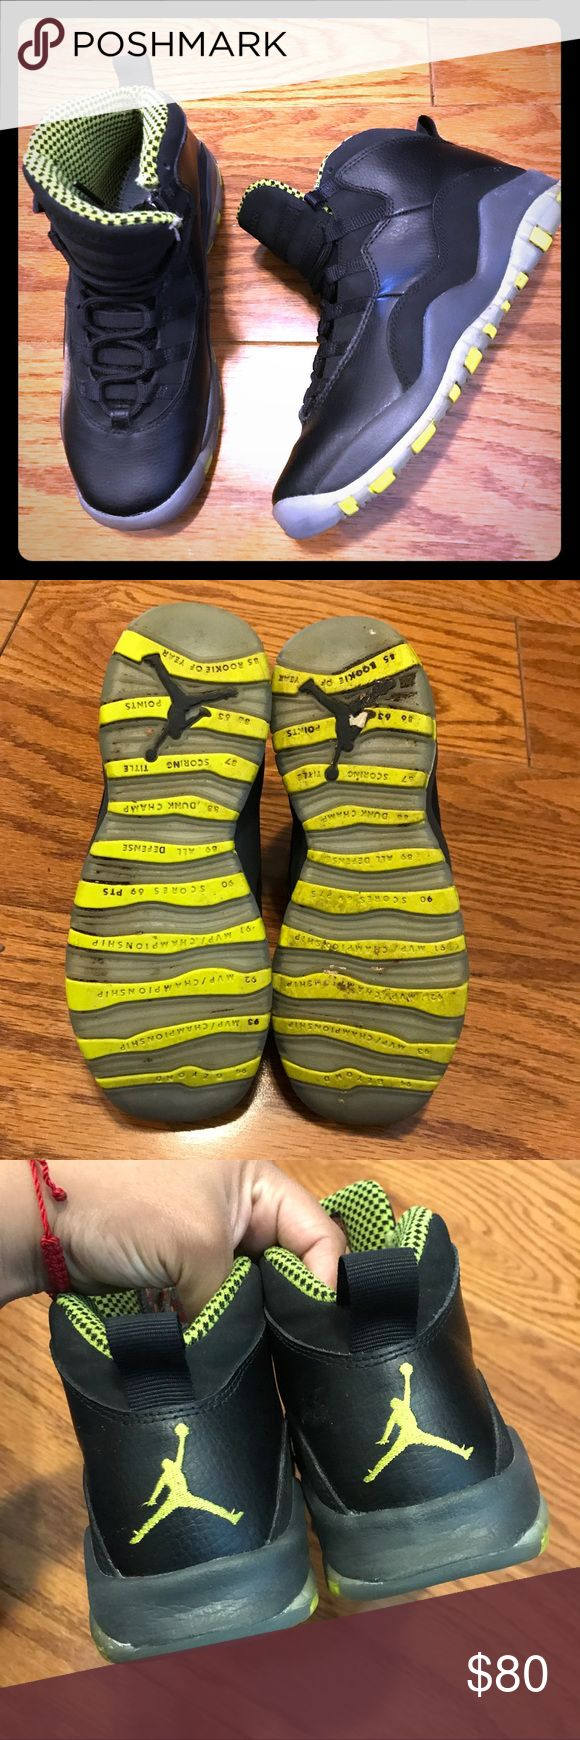 Nike Air Jordan Retro 10 Venom Green Youth Sneaker Size- US 5Y youth  Condition- Missing insoles, otherwise normal signs of wear, see pictures. Air Jordan Shoes Sneakers